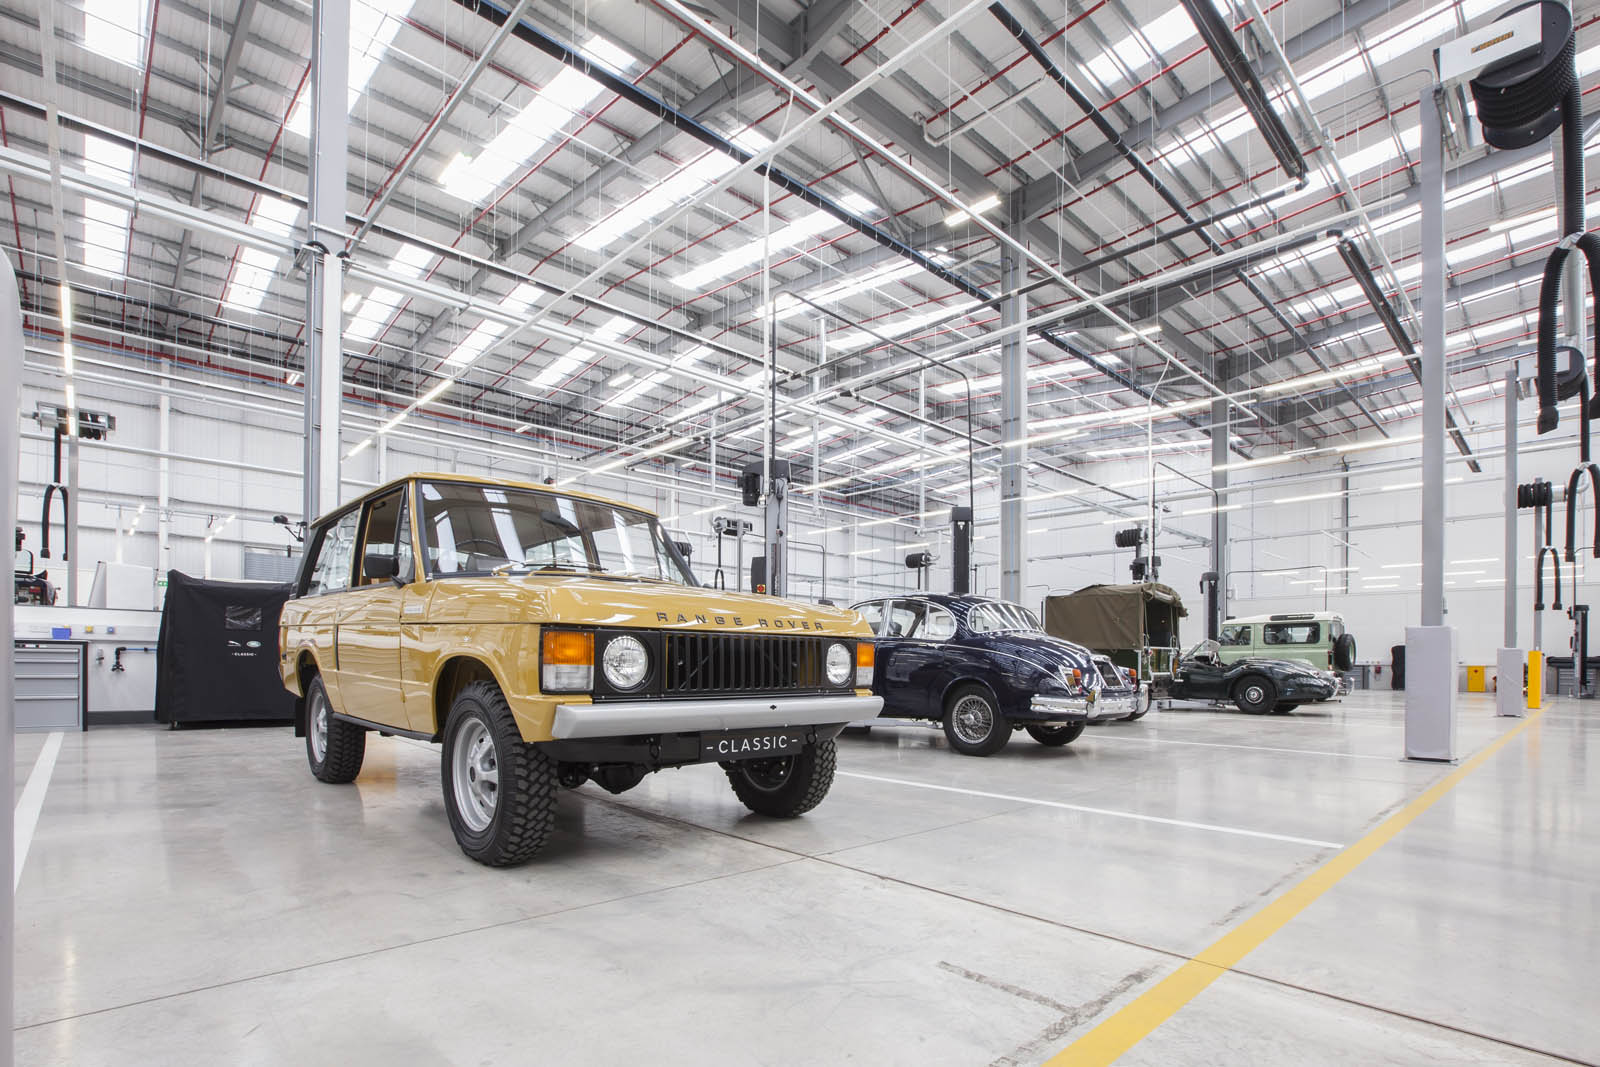 Jaguar Land Rover Opens The World\'s Largest Classic Car Center In ...